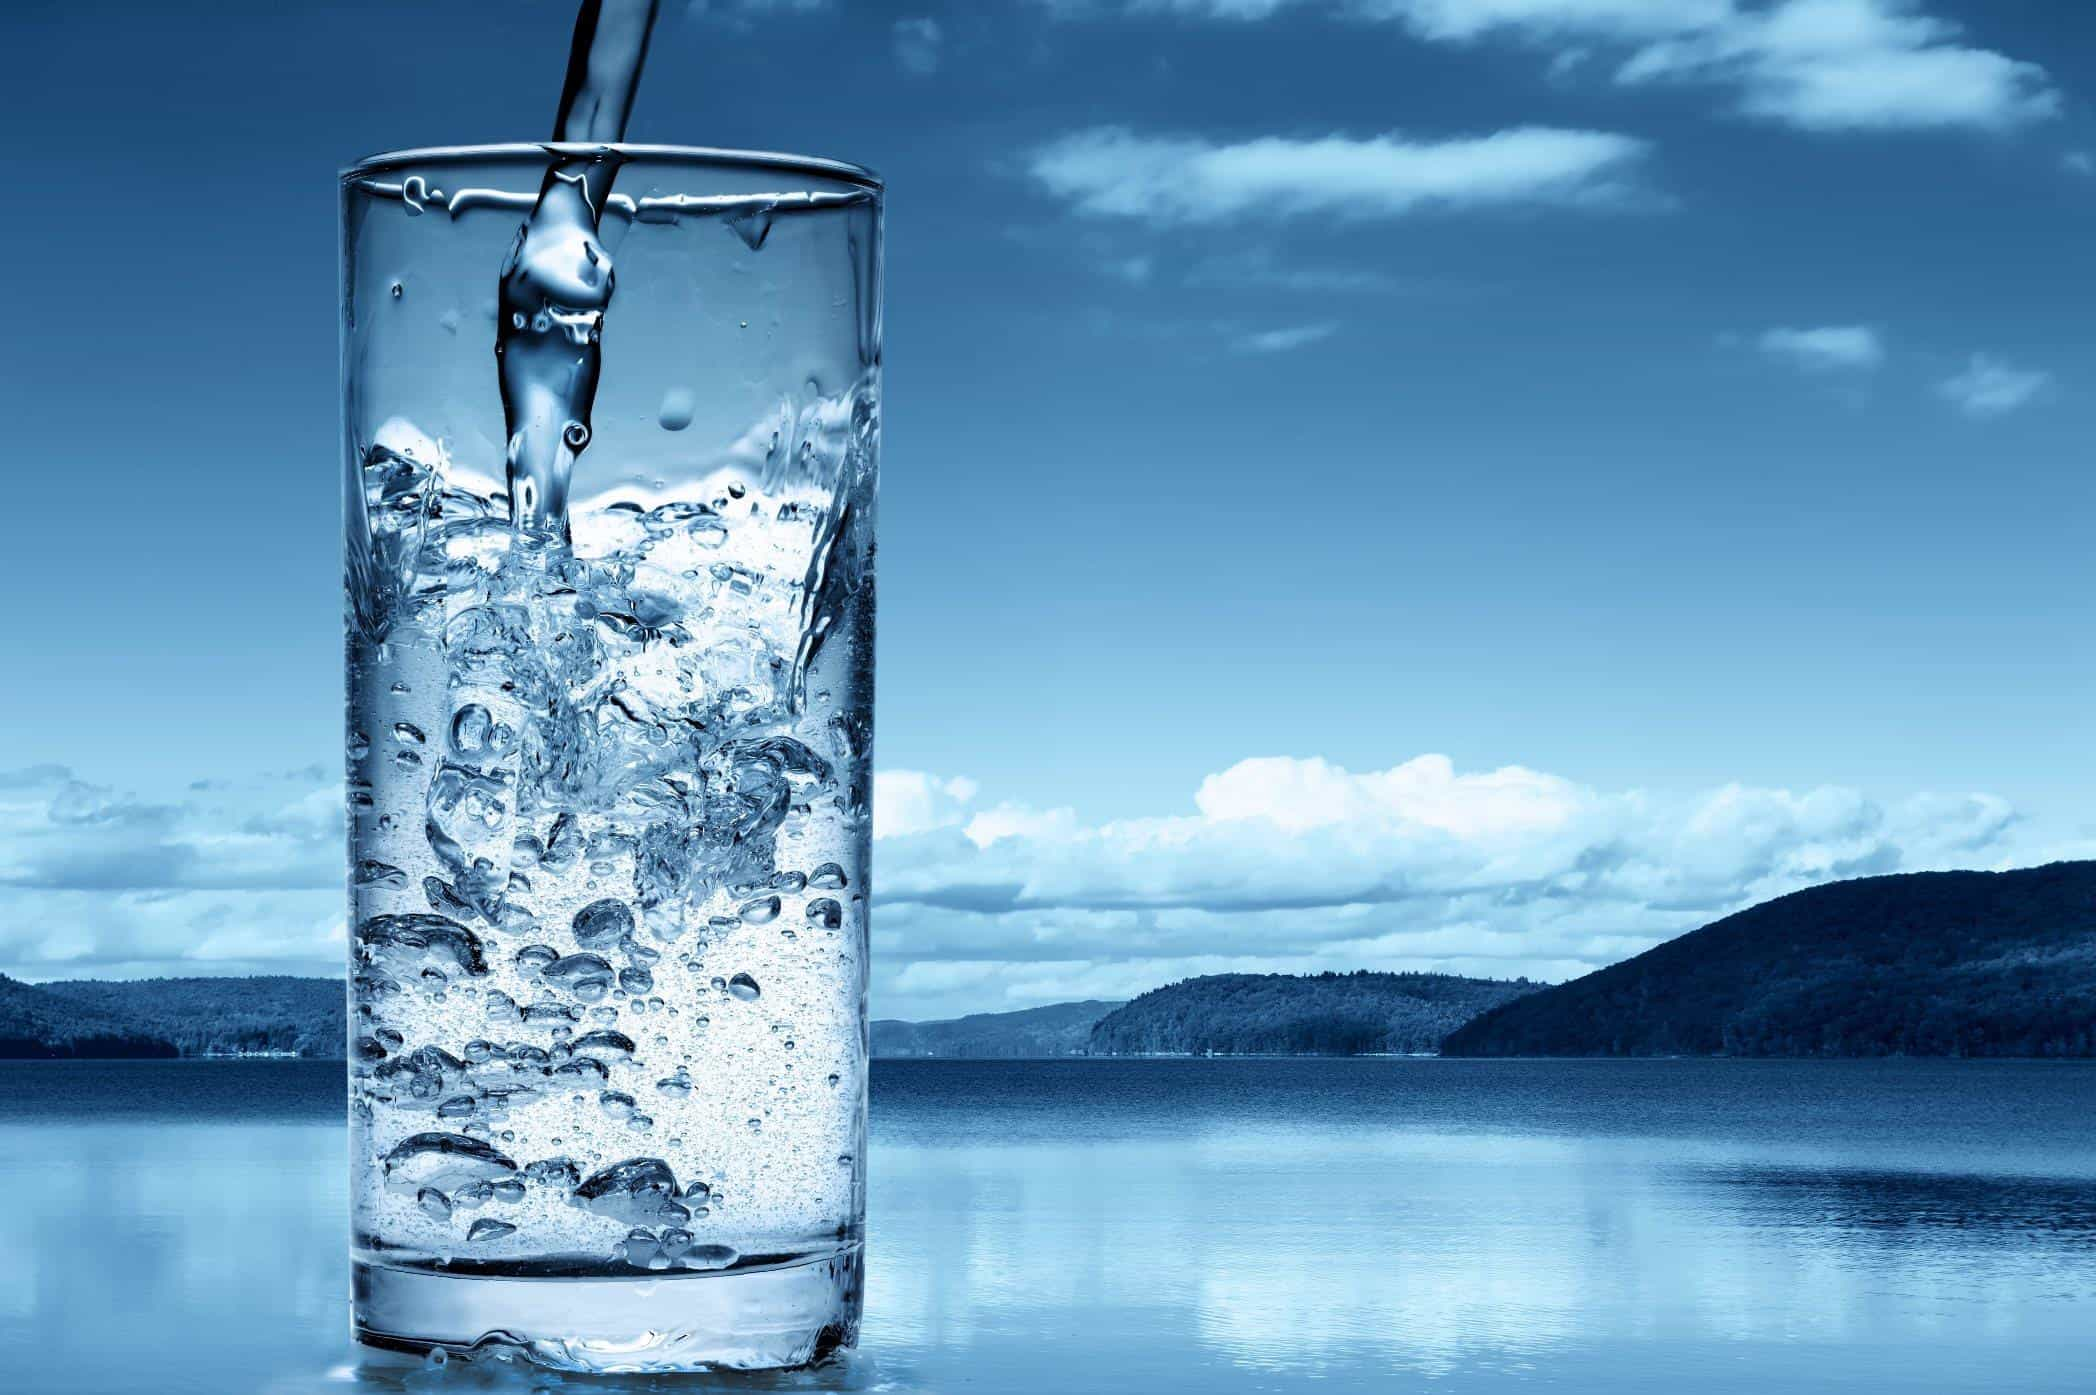 Indian scientists developed a method to turn seawater into drinkable water